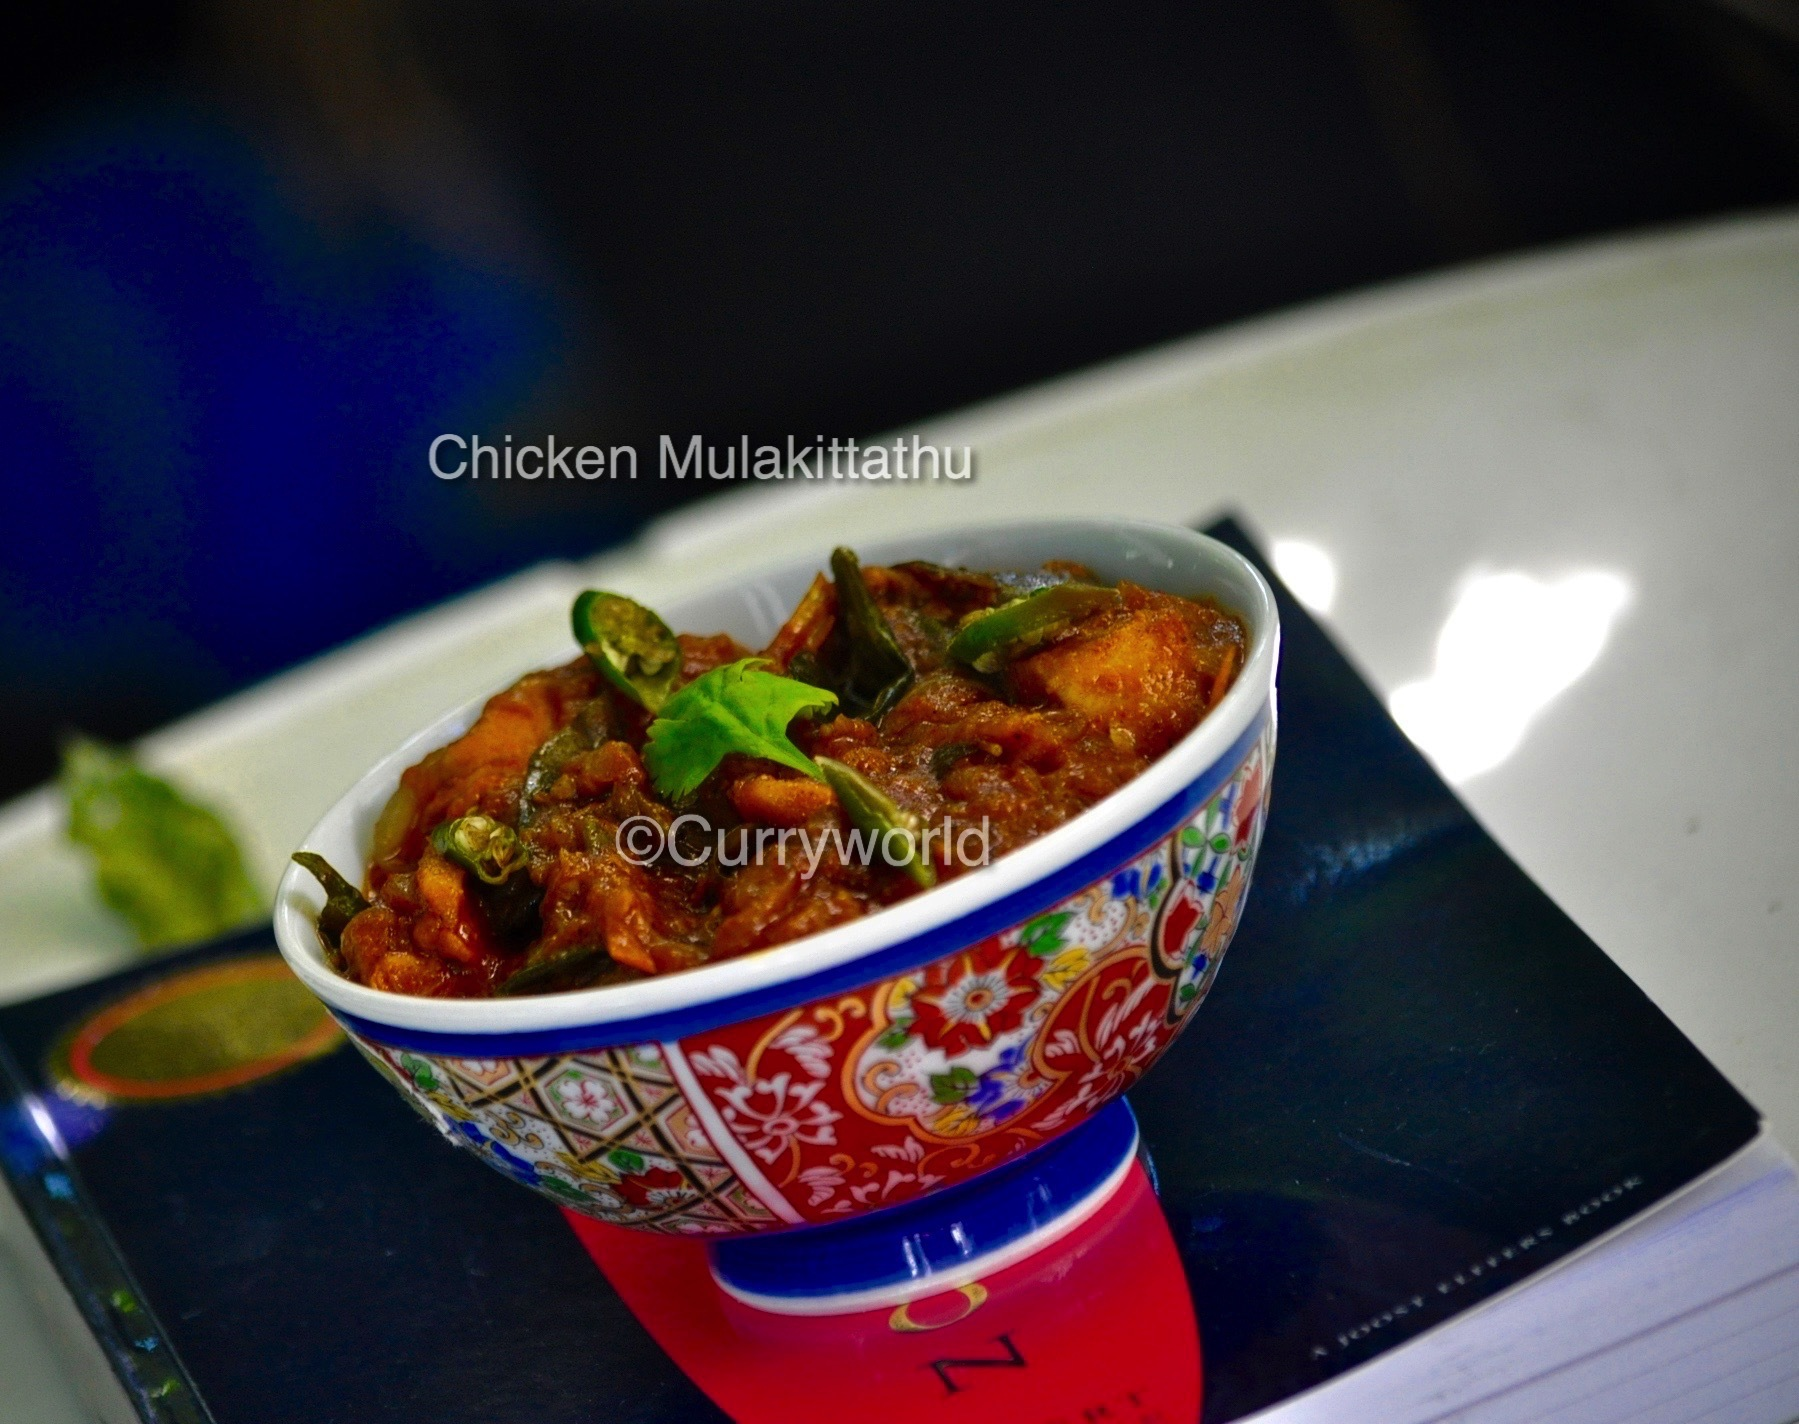 Chicken Mulakittathu/Spicy Kerala Chicken Curry in Chilli-Tomato Gravy